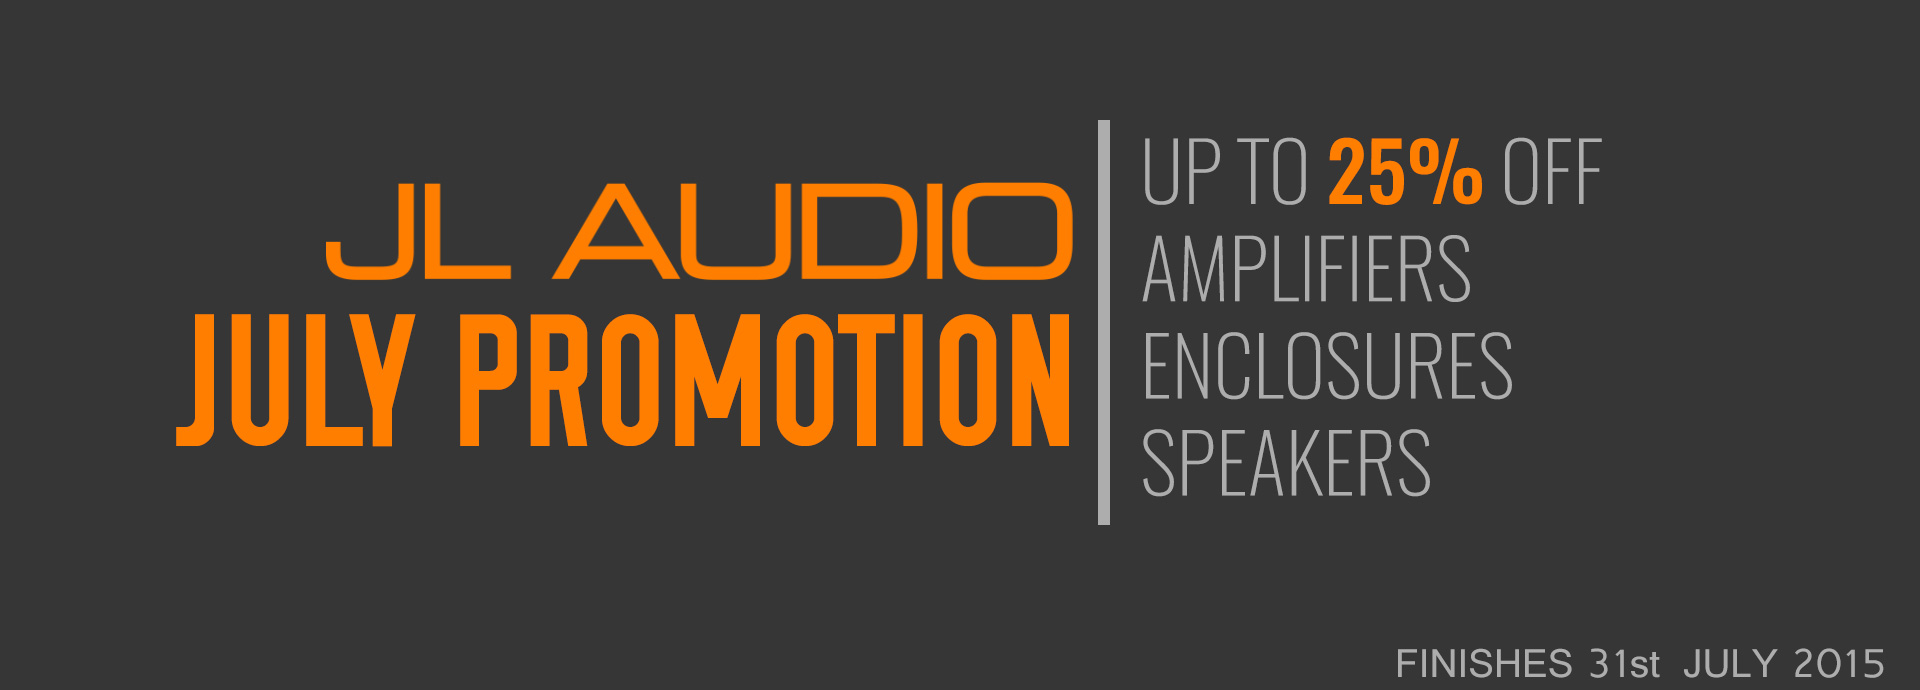 JL Audio July Promotion